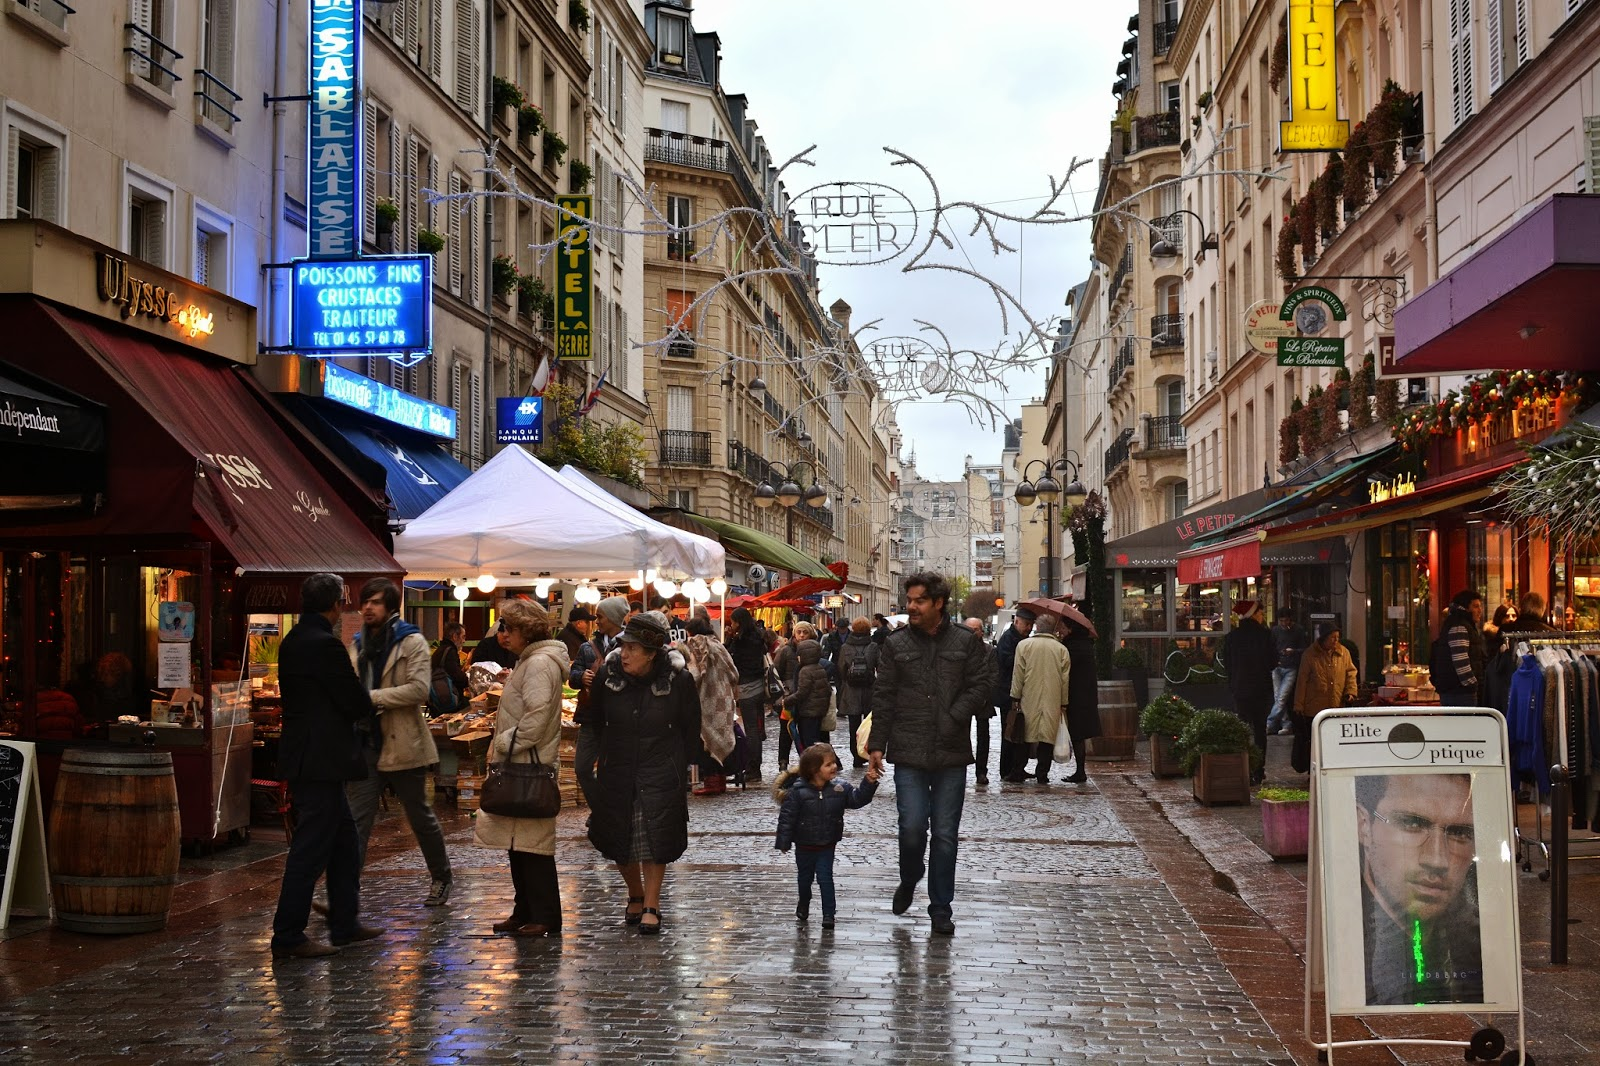 Rue Cler is one of the best pedestrian streets not only in Paris, but in the world. At Christmas it is simply magical.